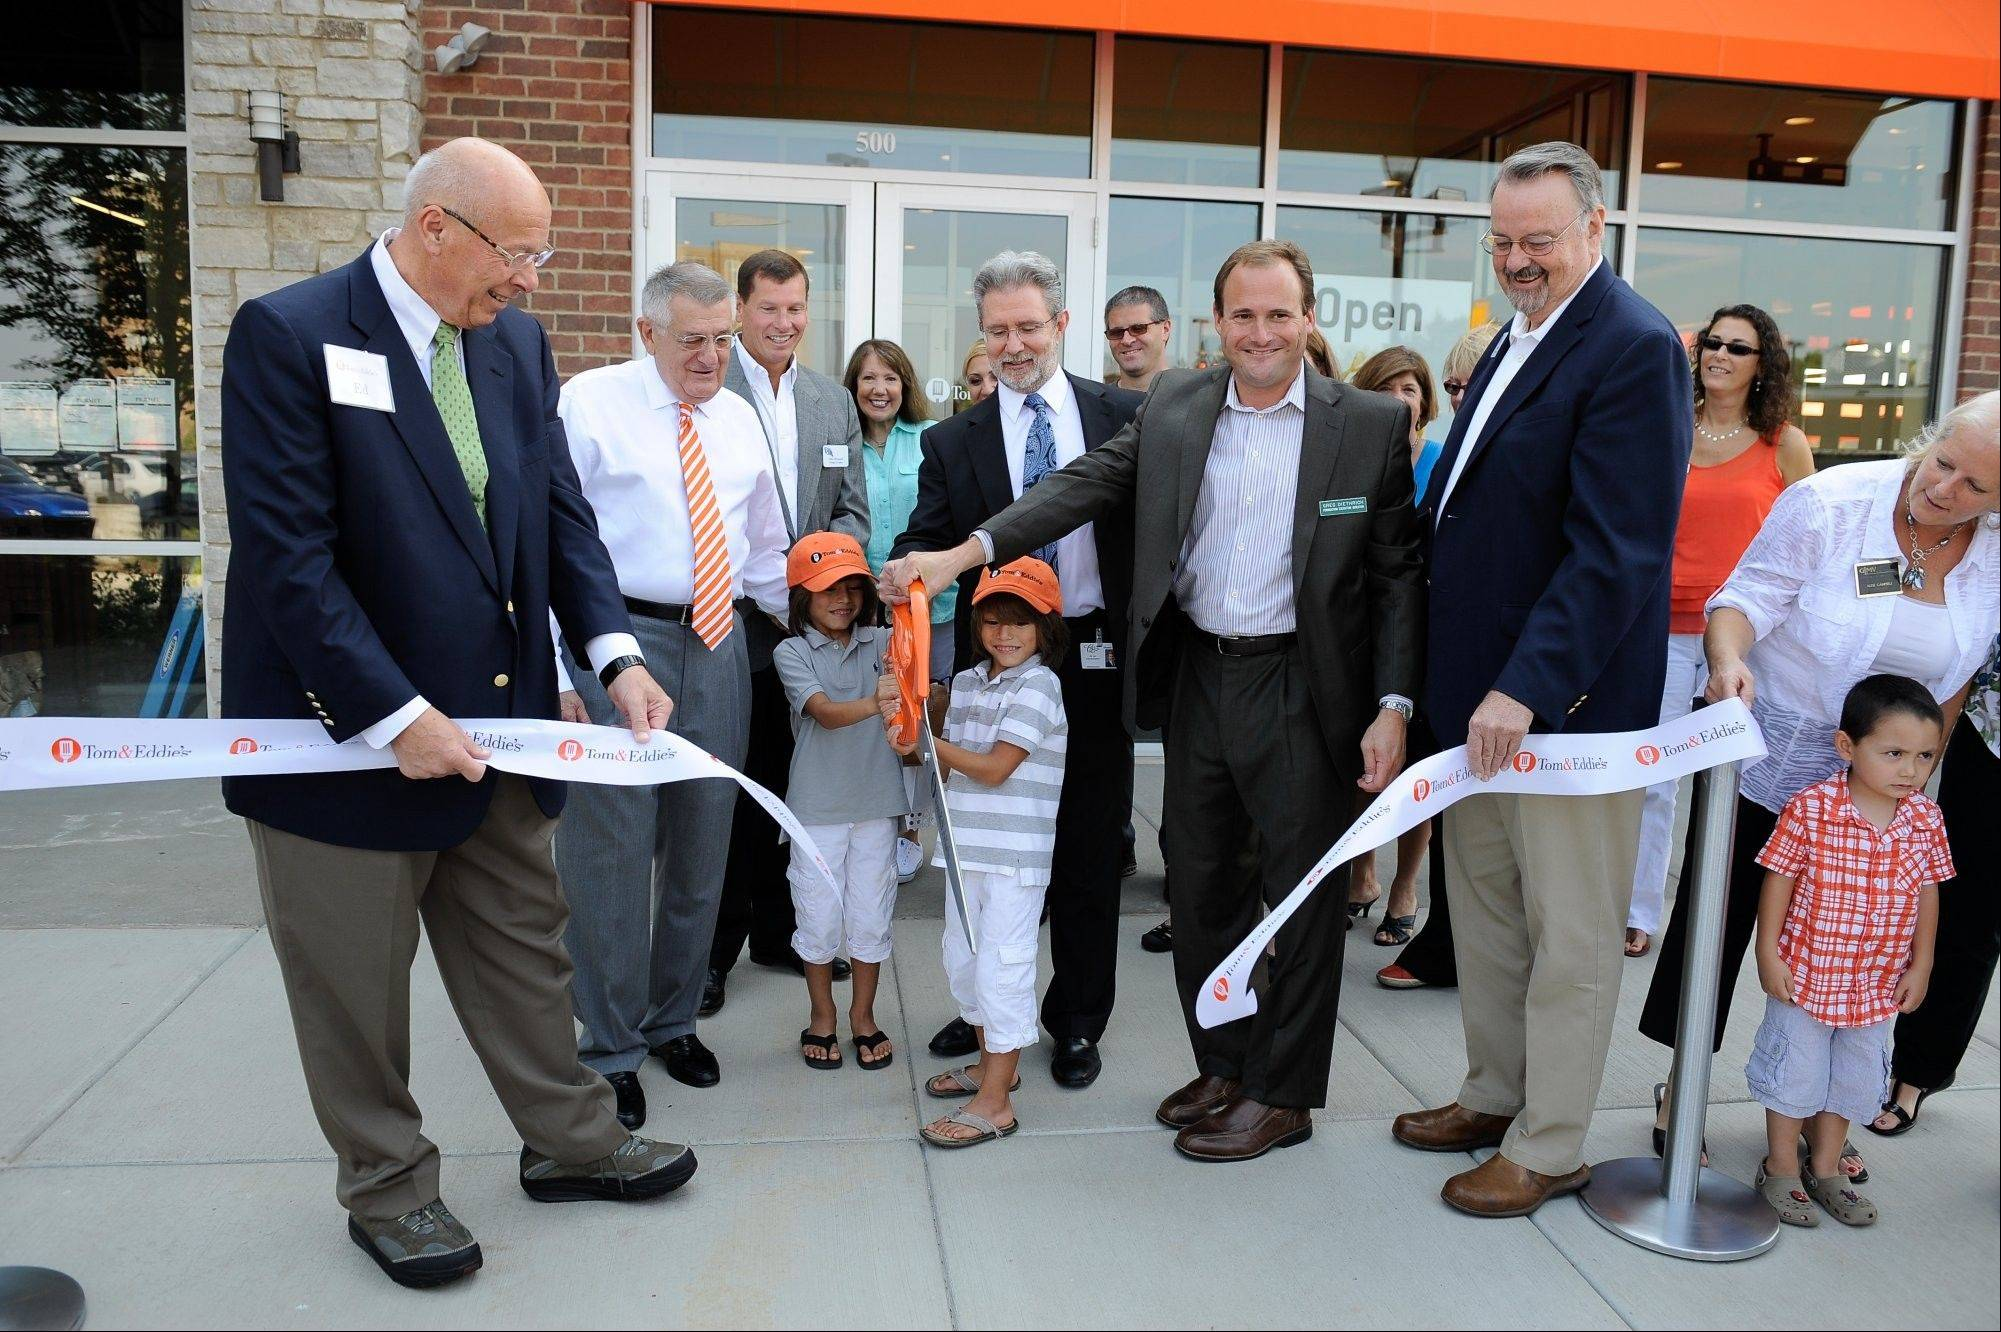 Taylor Riggi, 6, left, and his twin brother, Tyler, cut the ribbon with Tom & Eddie�s co-founders Tom Dentice and Ed Rensi at the grand opening of Tom & Eddie�s new location in Vernon Hills.